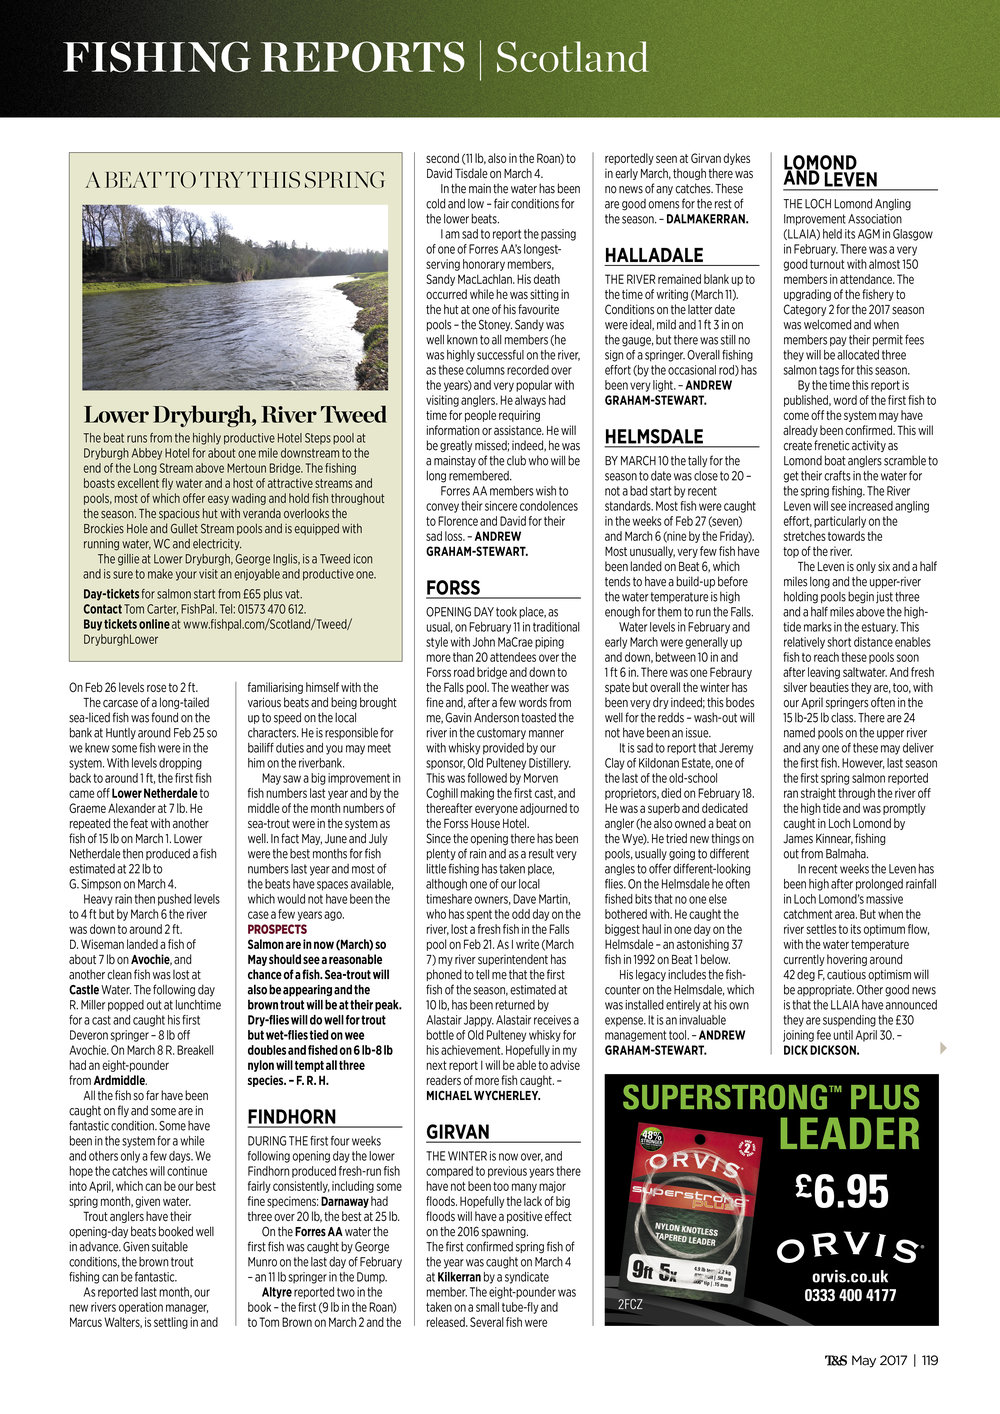 Fishing Reports May 2017 p119.jpg